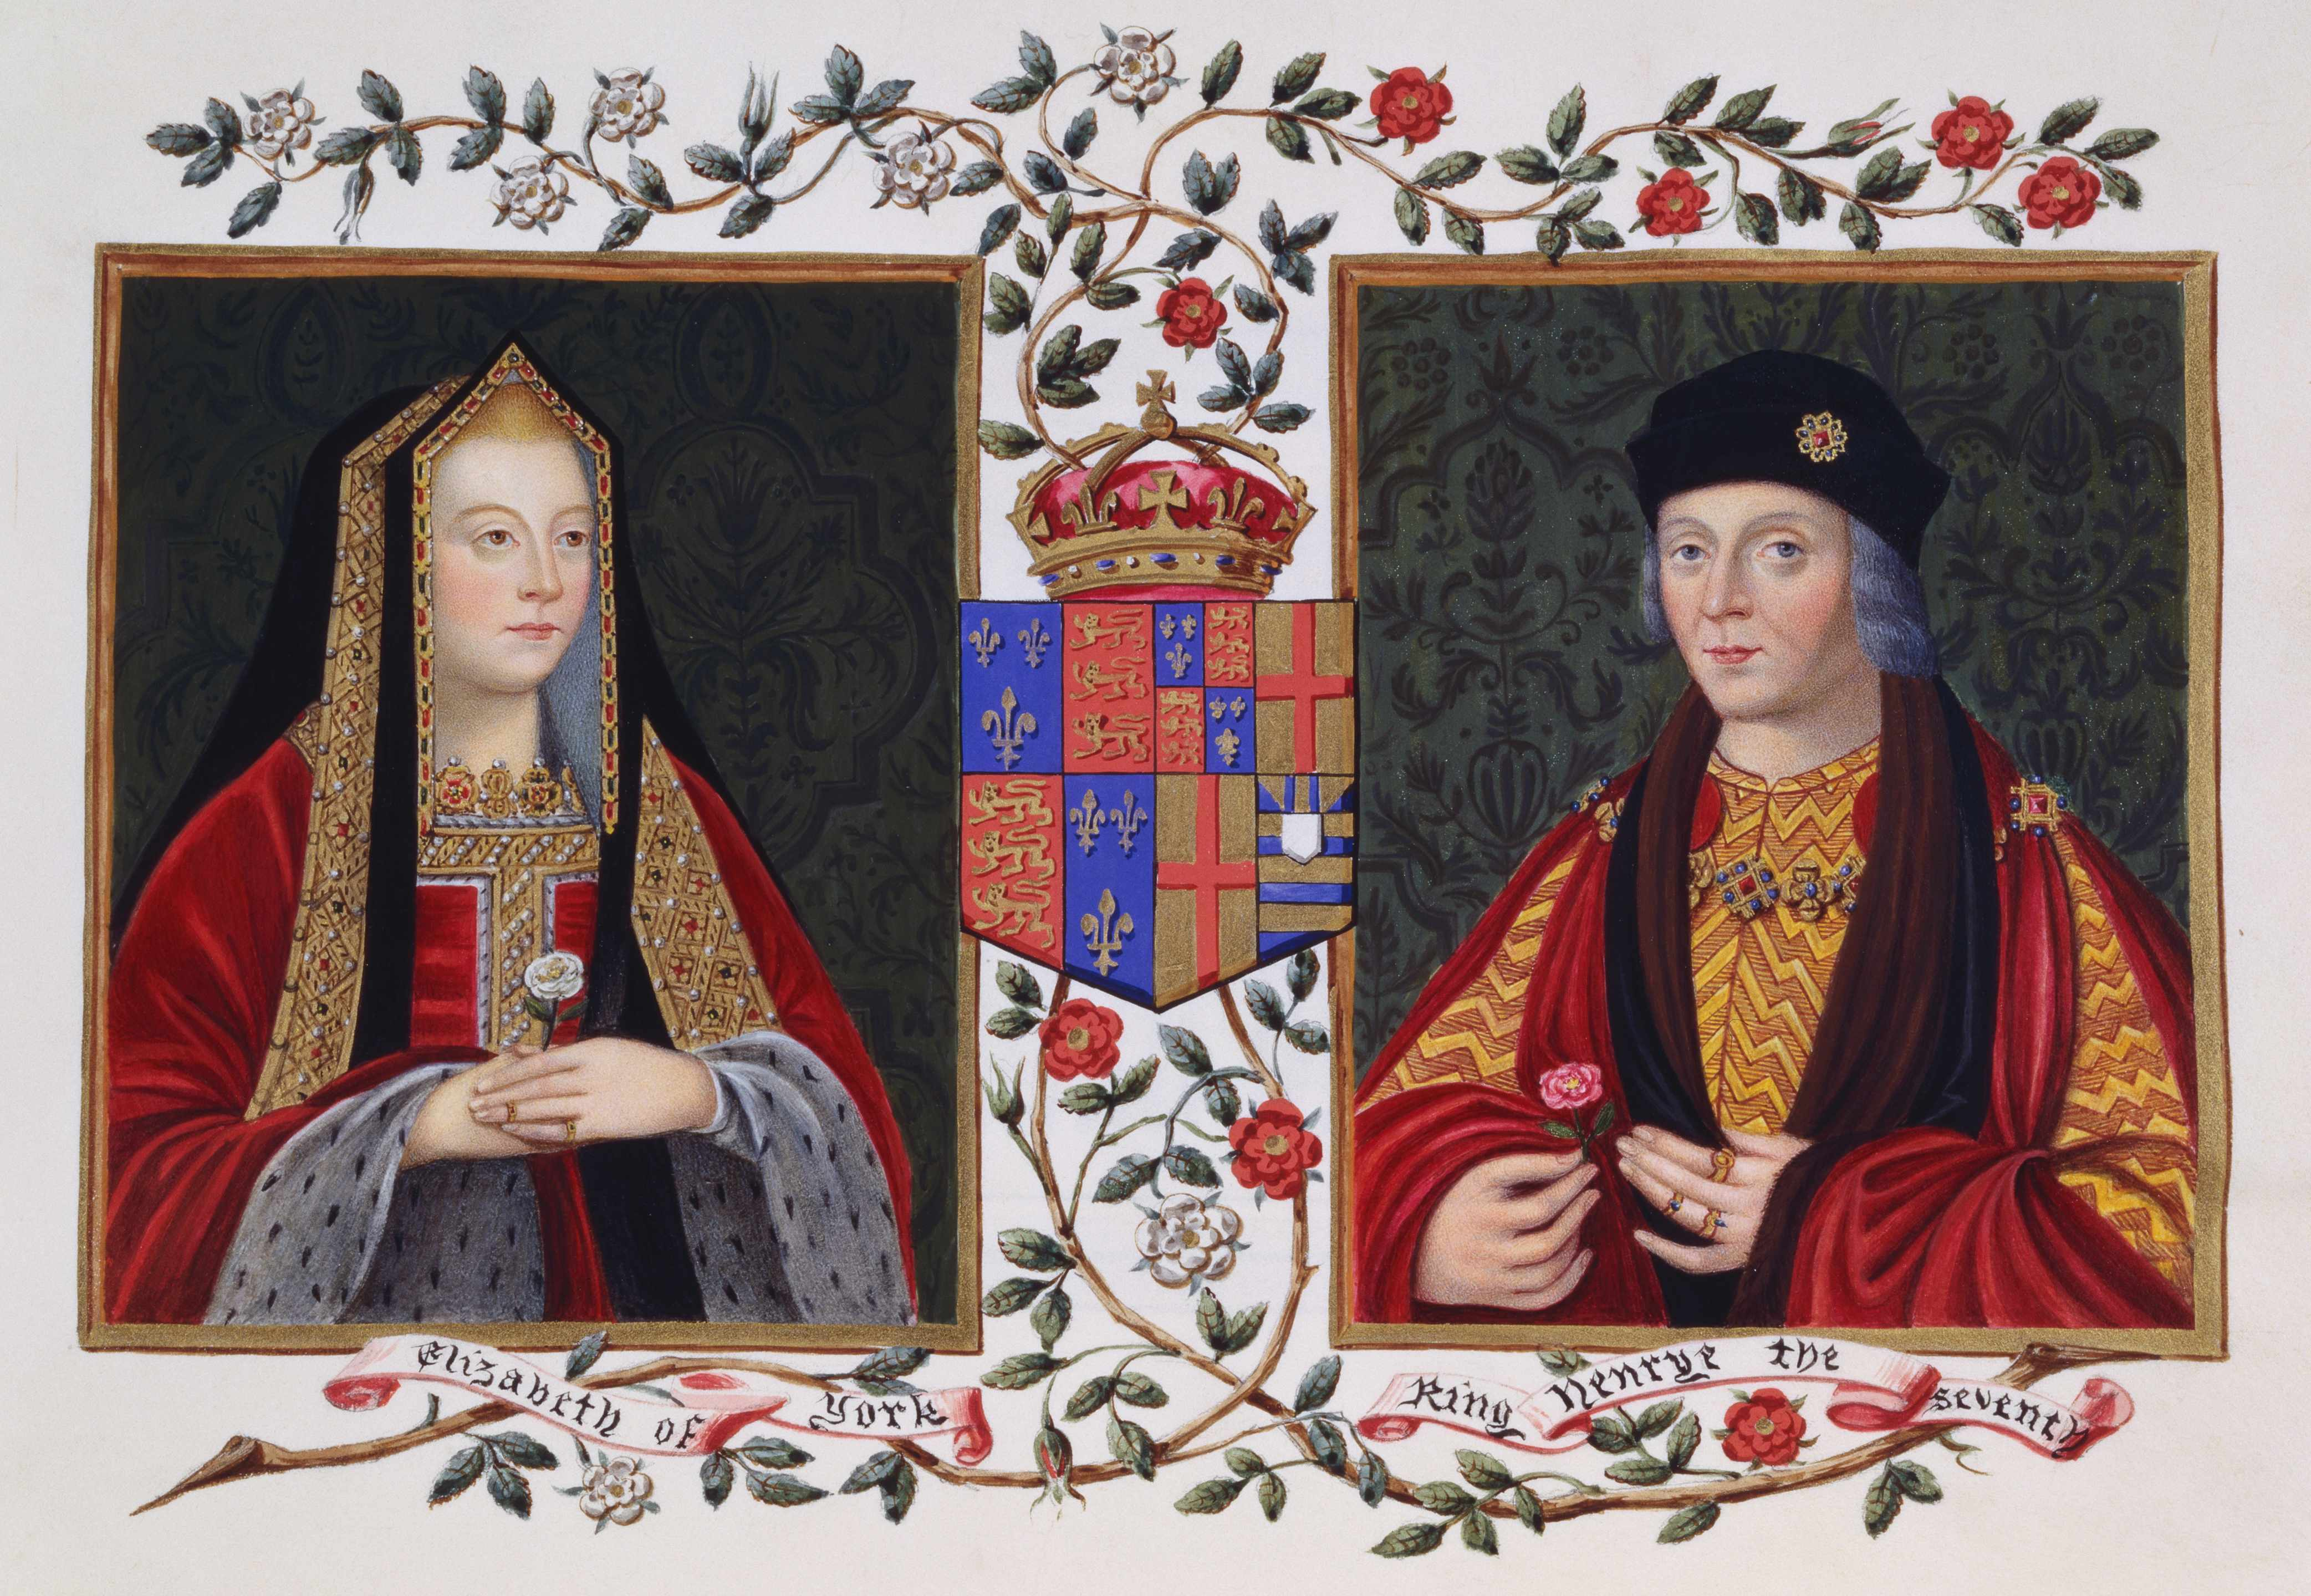 An illustration of Elizabeth of York and Henry VII.